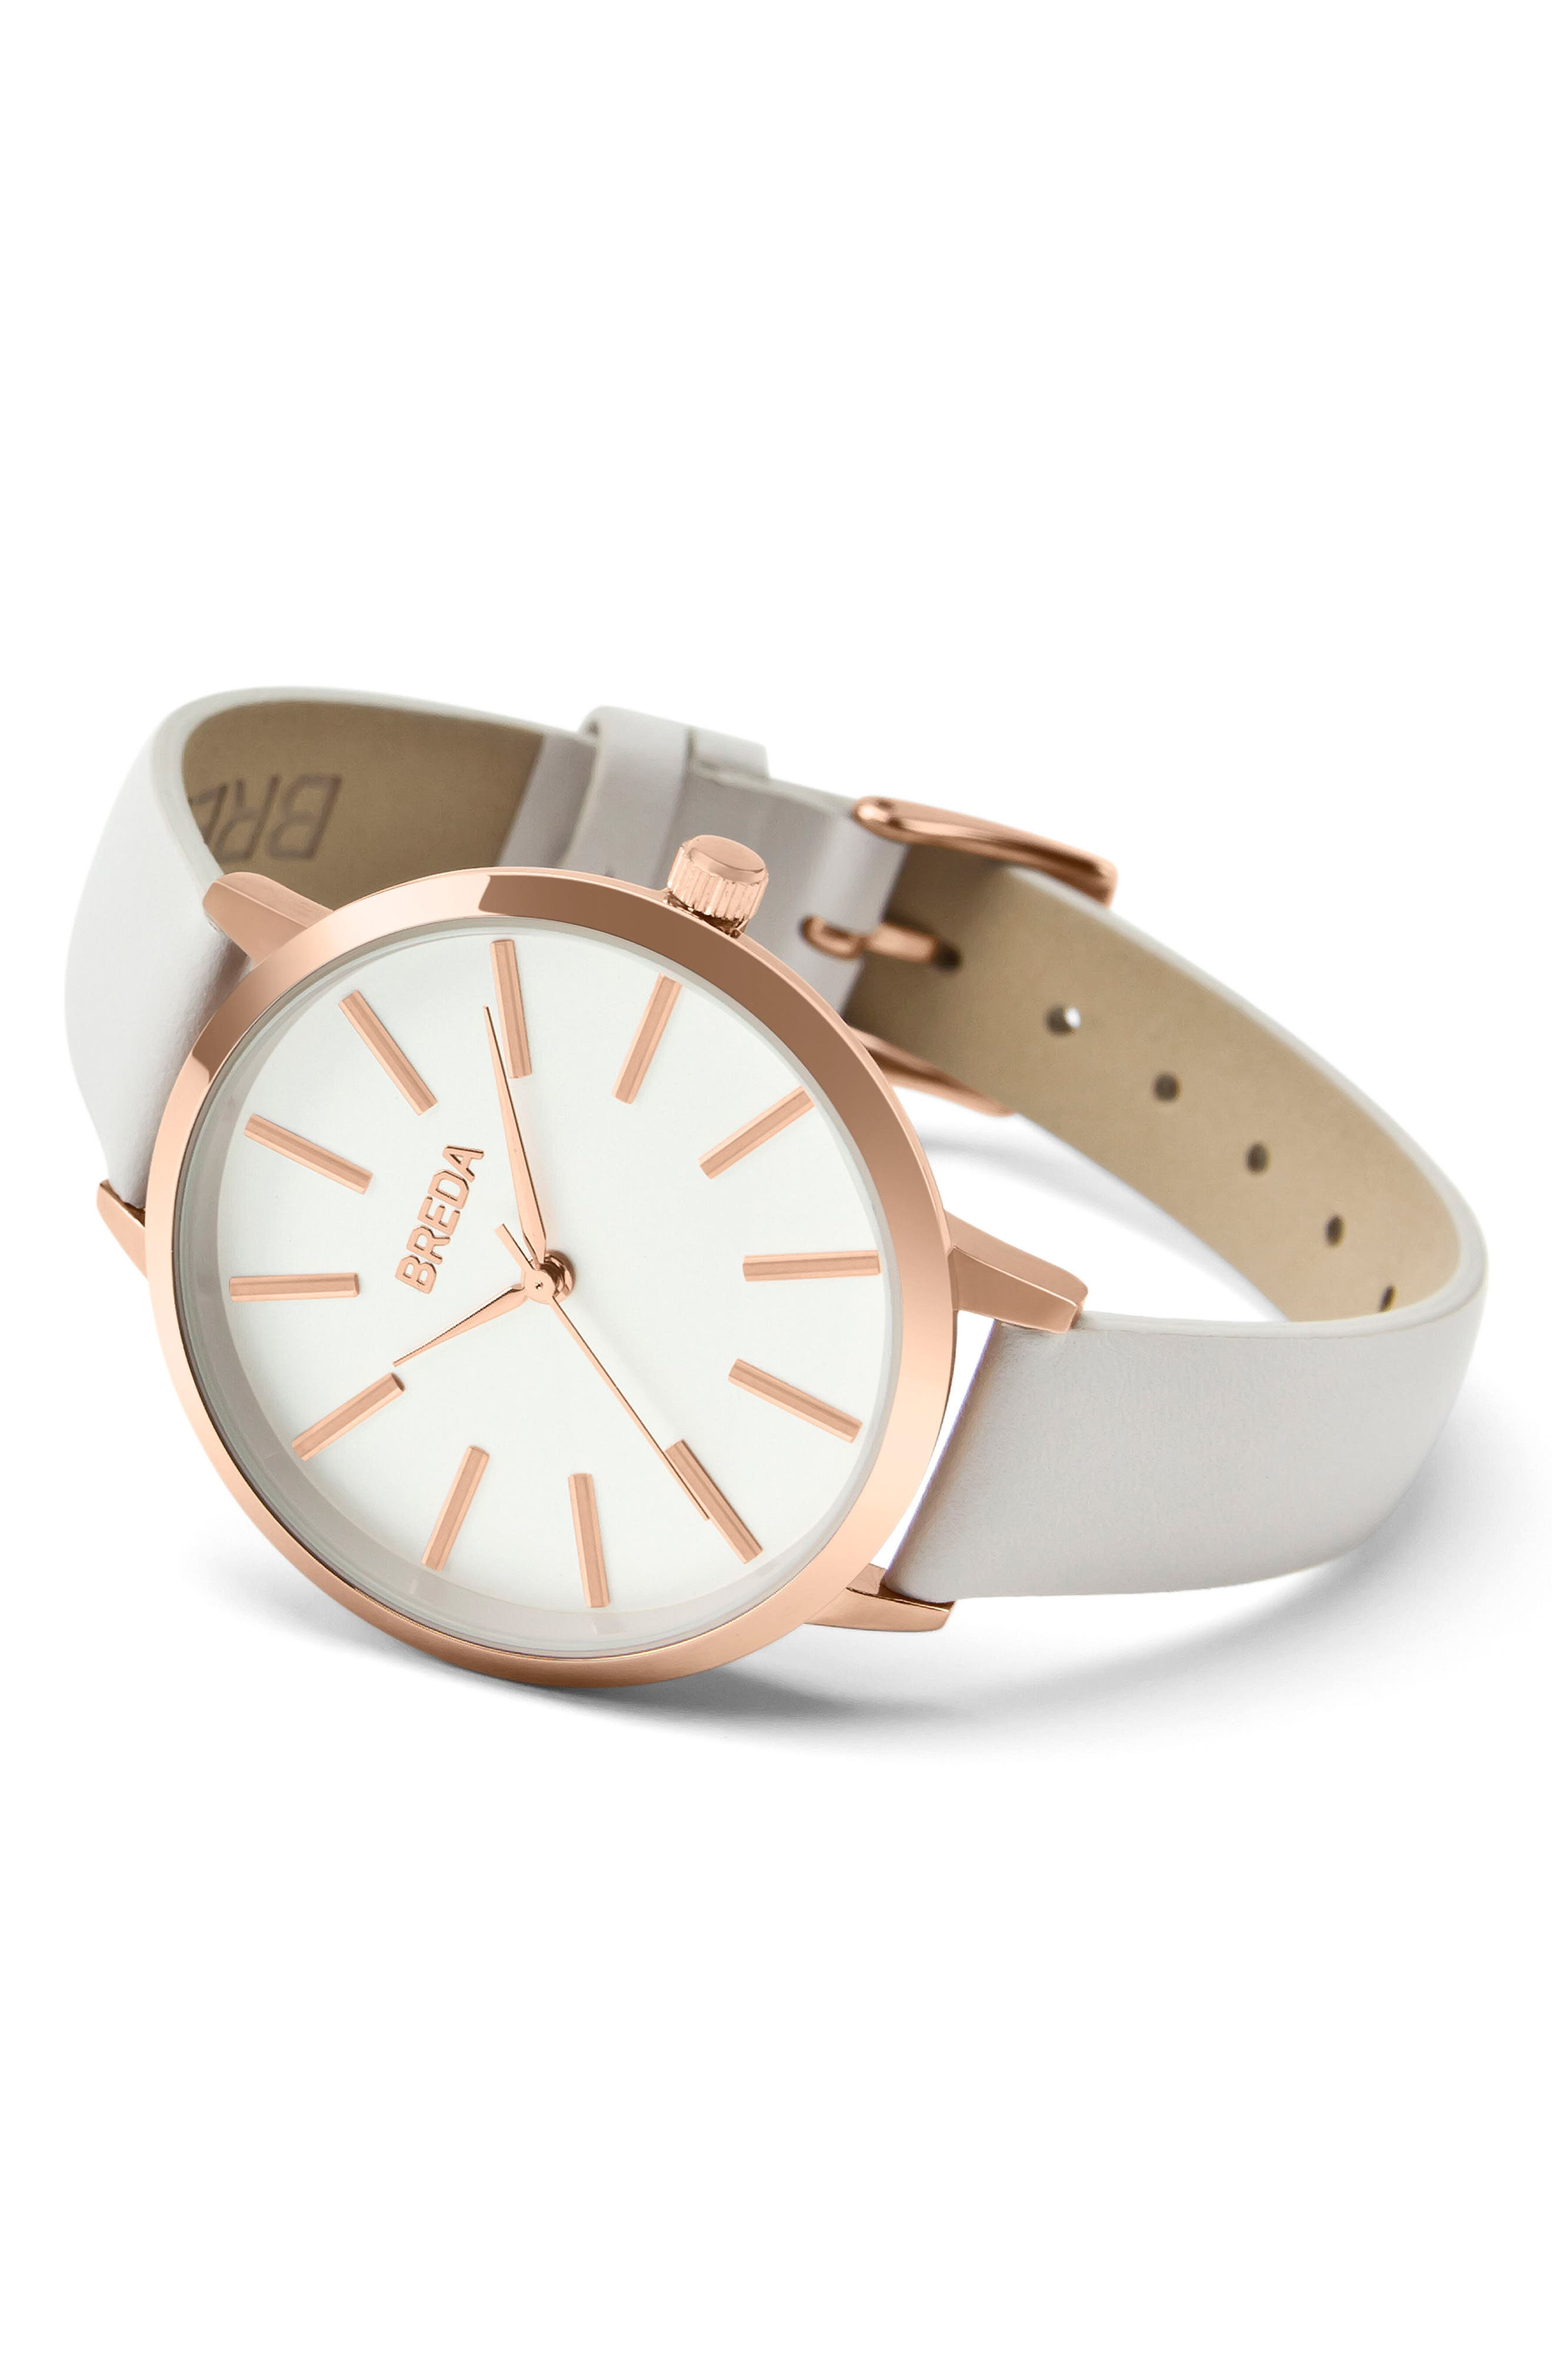 Joule Round Leather Strap Watch, 37mm,                             Alternate thumbnail 2, color,                             Blush/ White/ Rose Gold